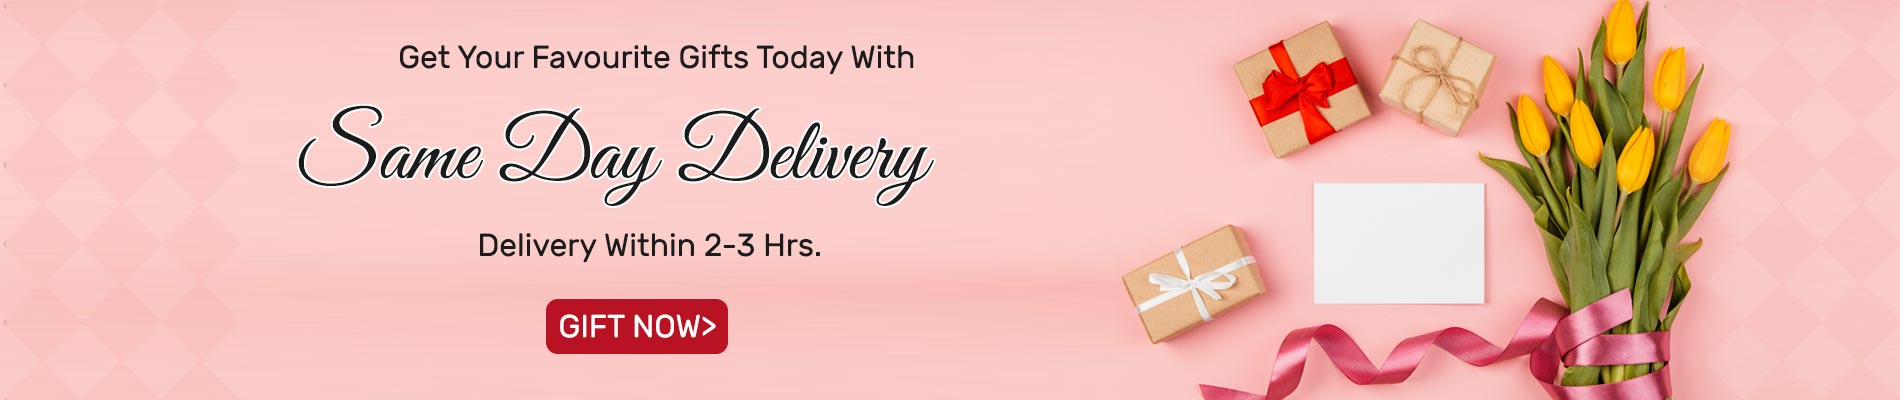 Same Day Delivery Gifts - One Day Gifts Delivery